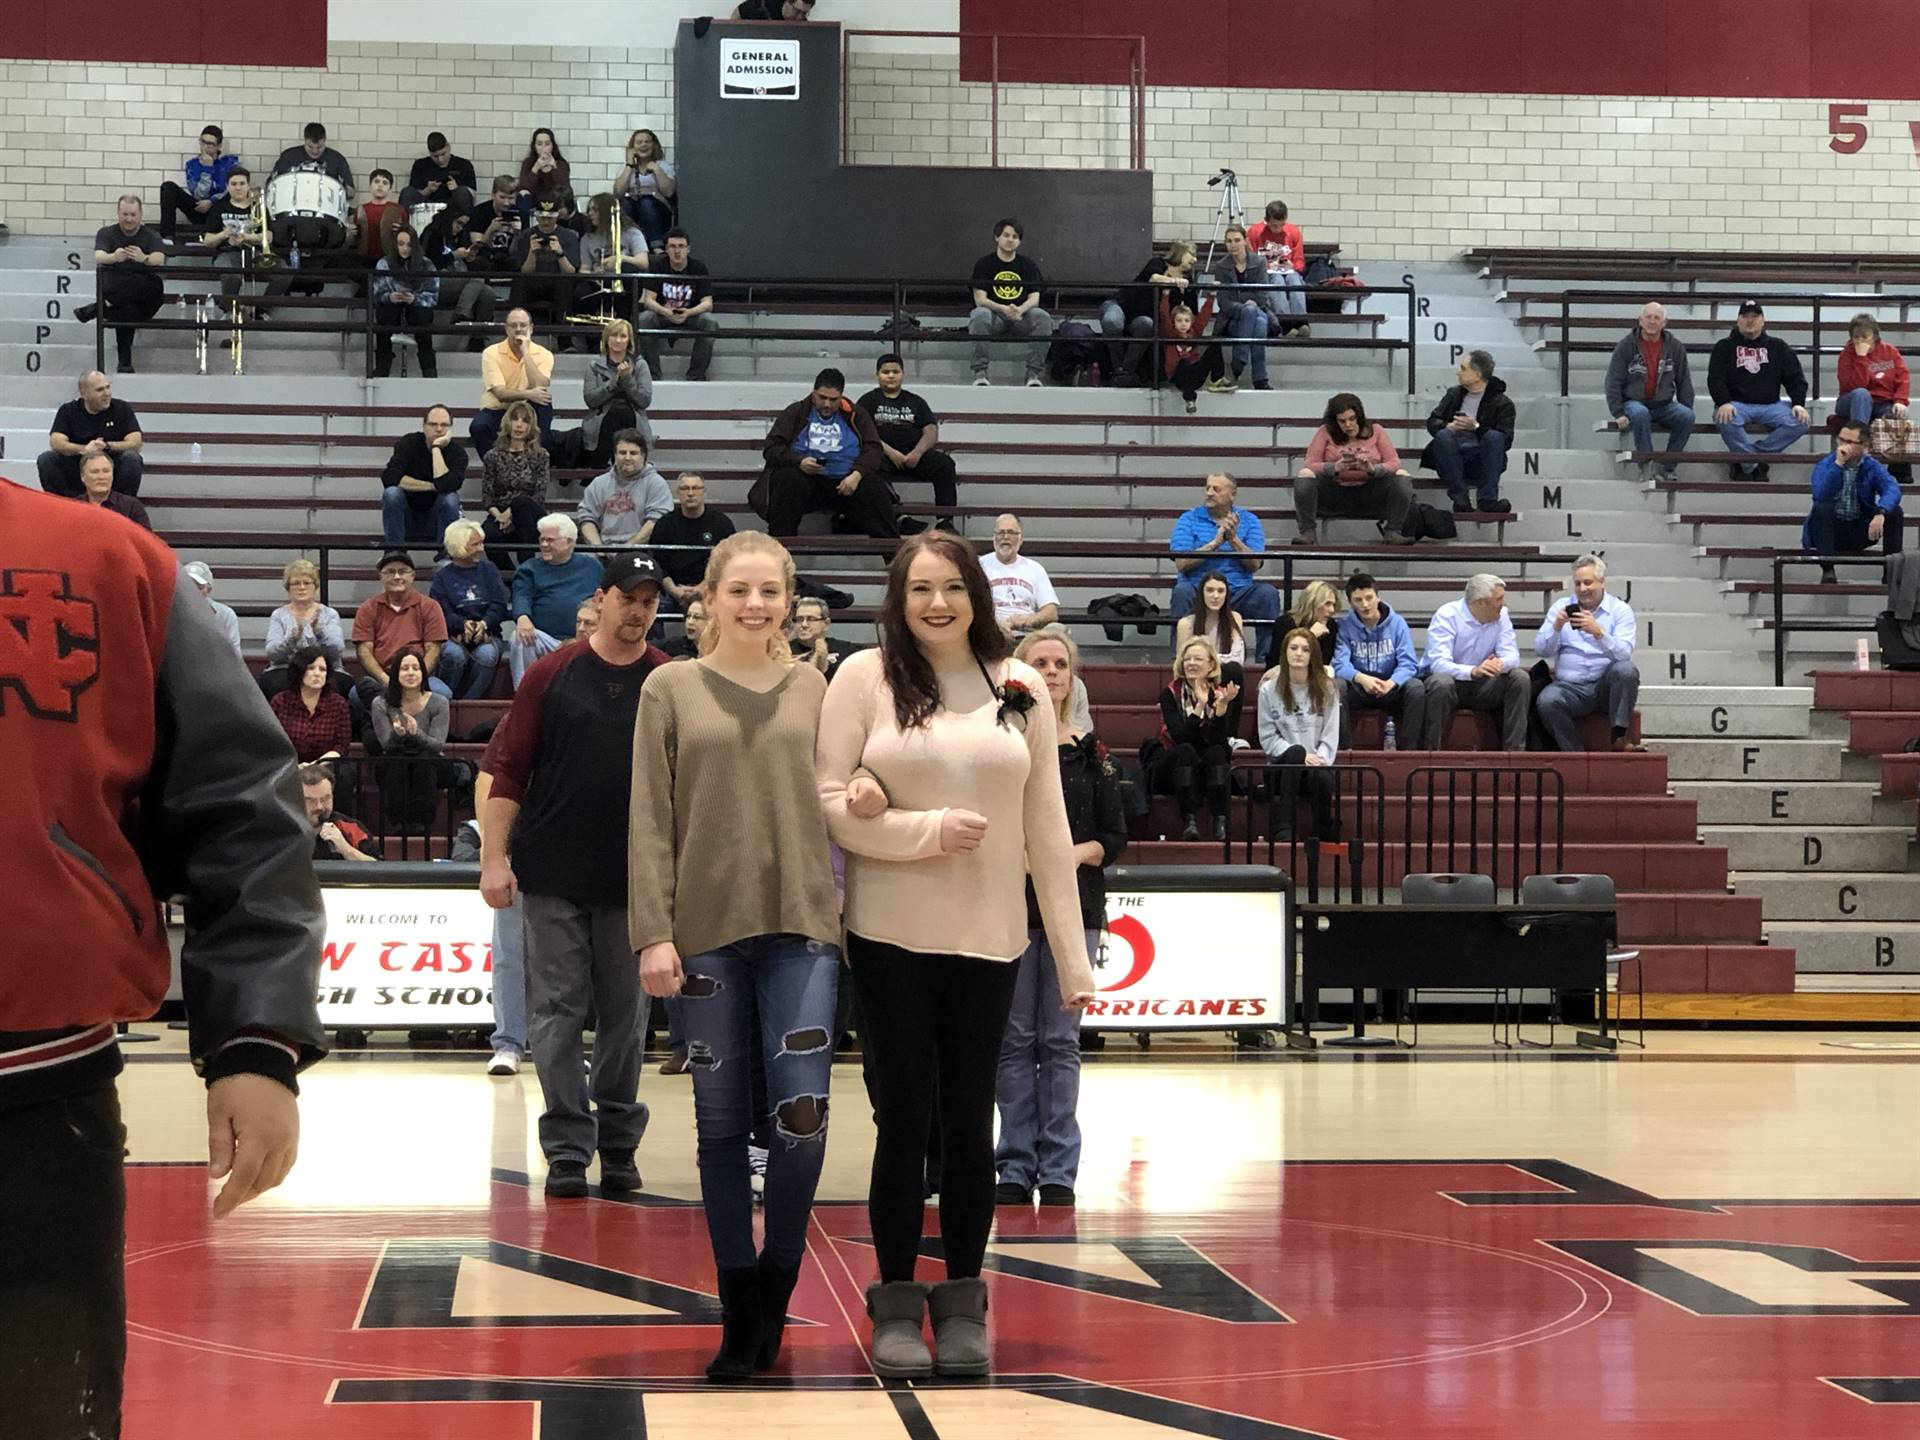 Kelly Green, escorted by Allie Hunkele